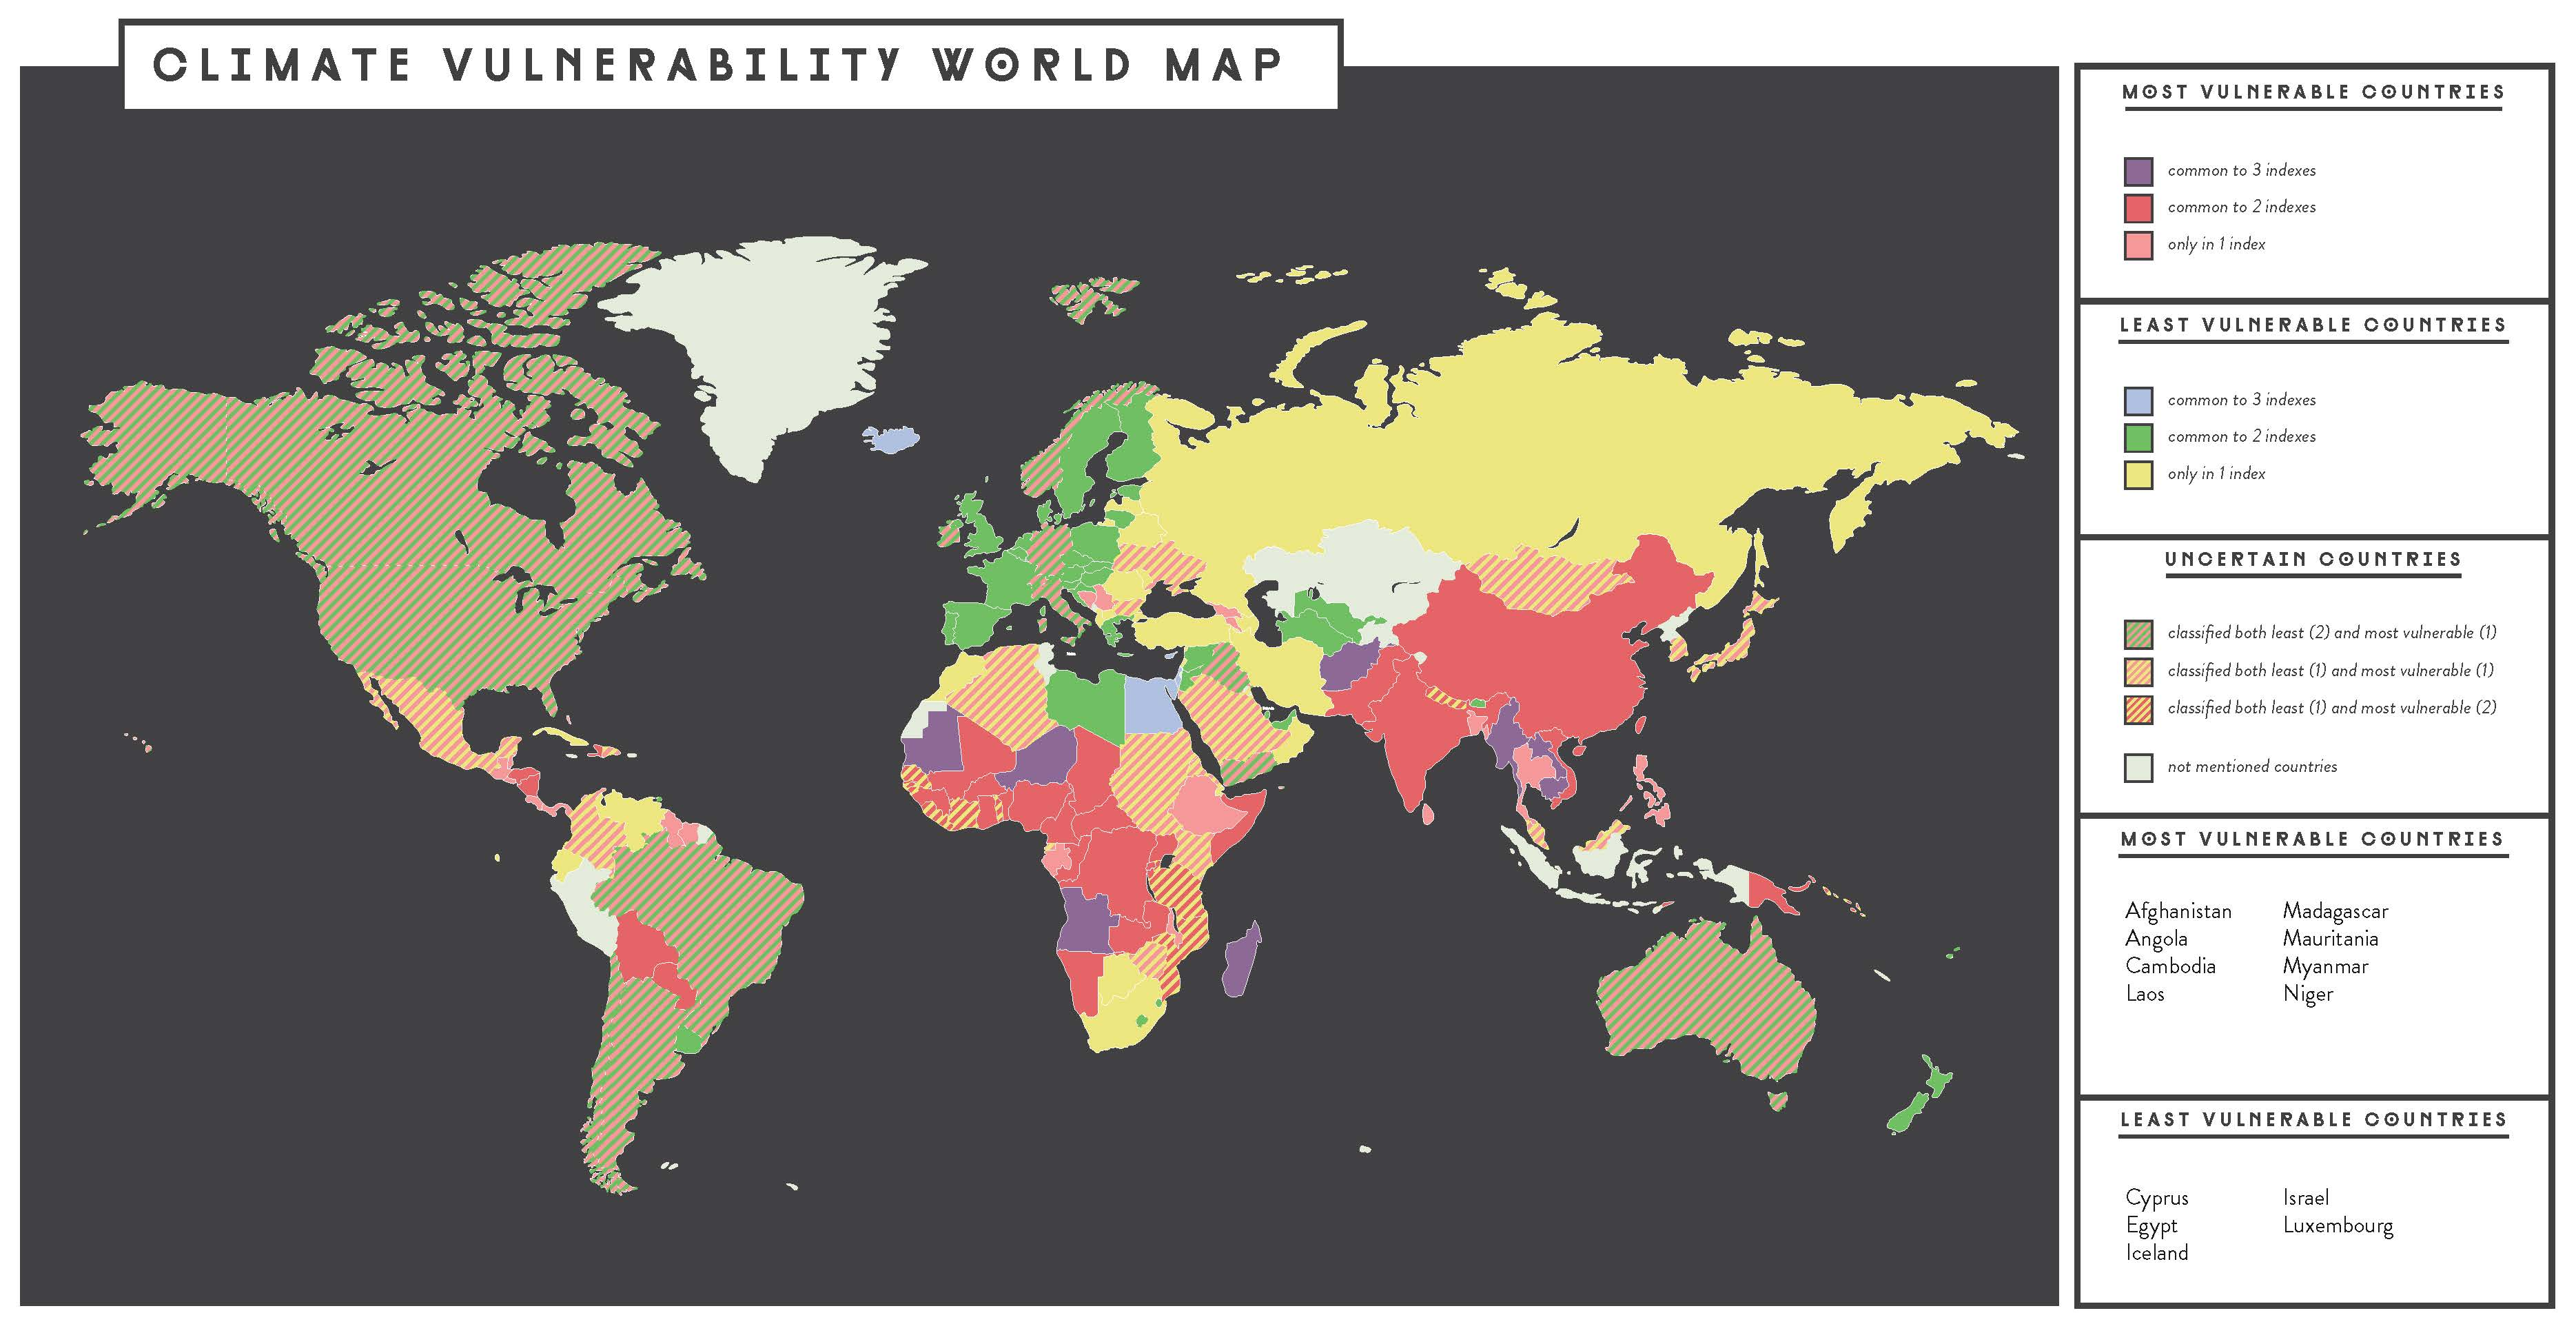 Climate_vulnerability_world_map.jpg